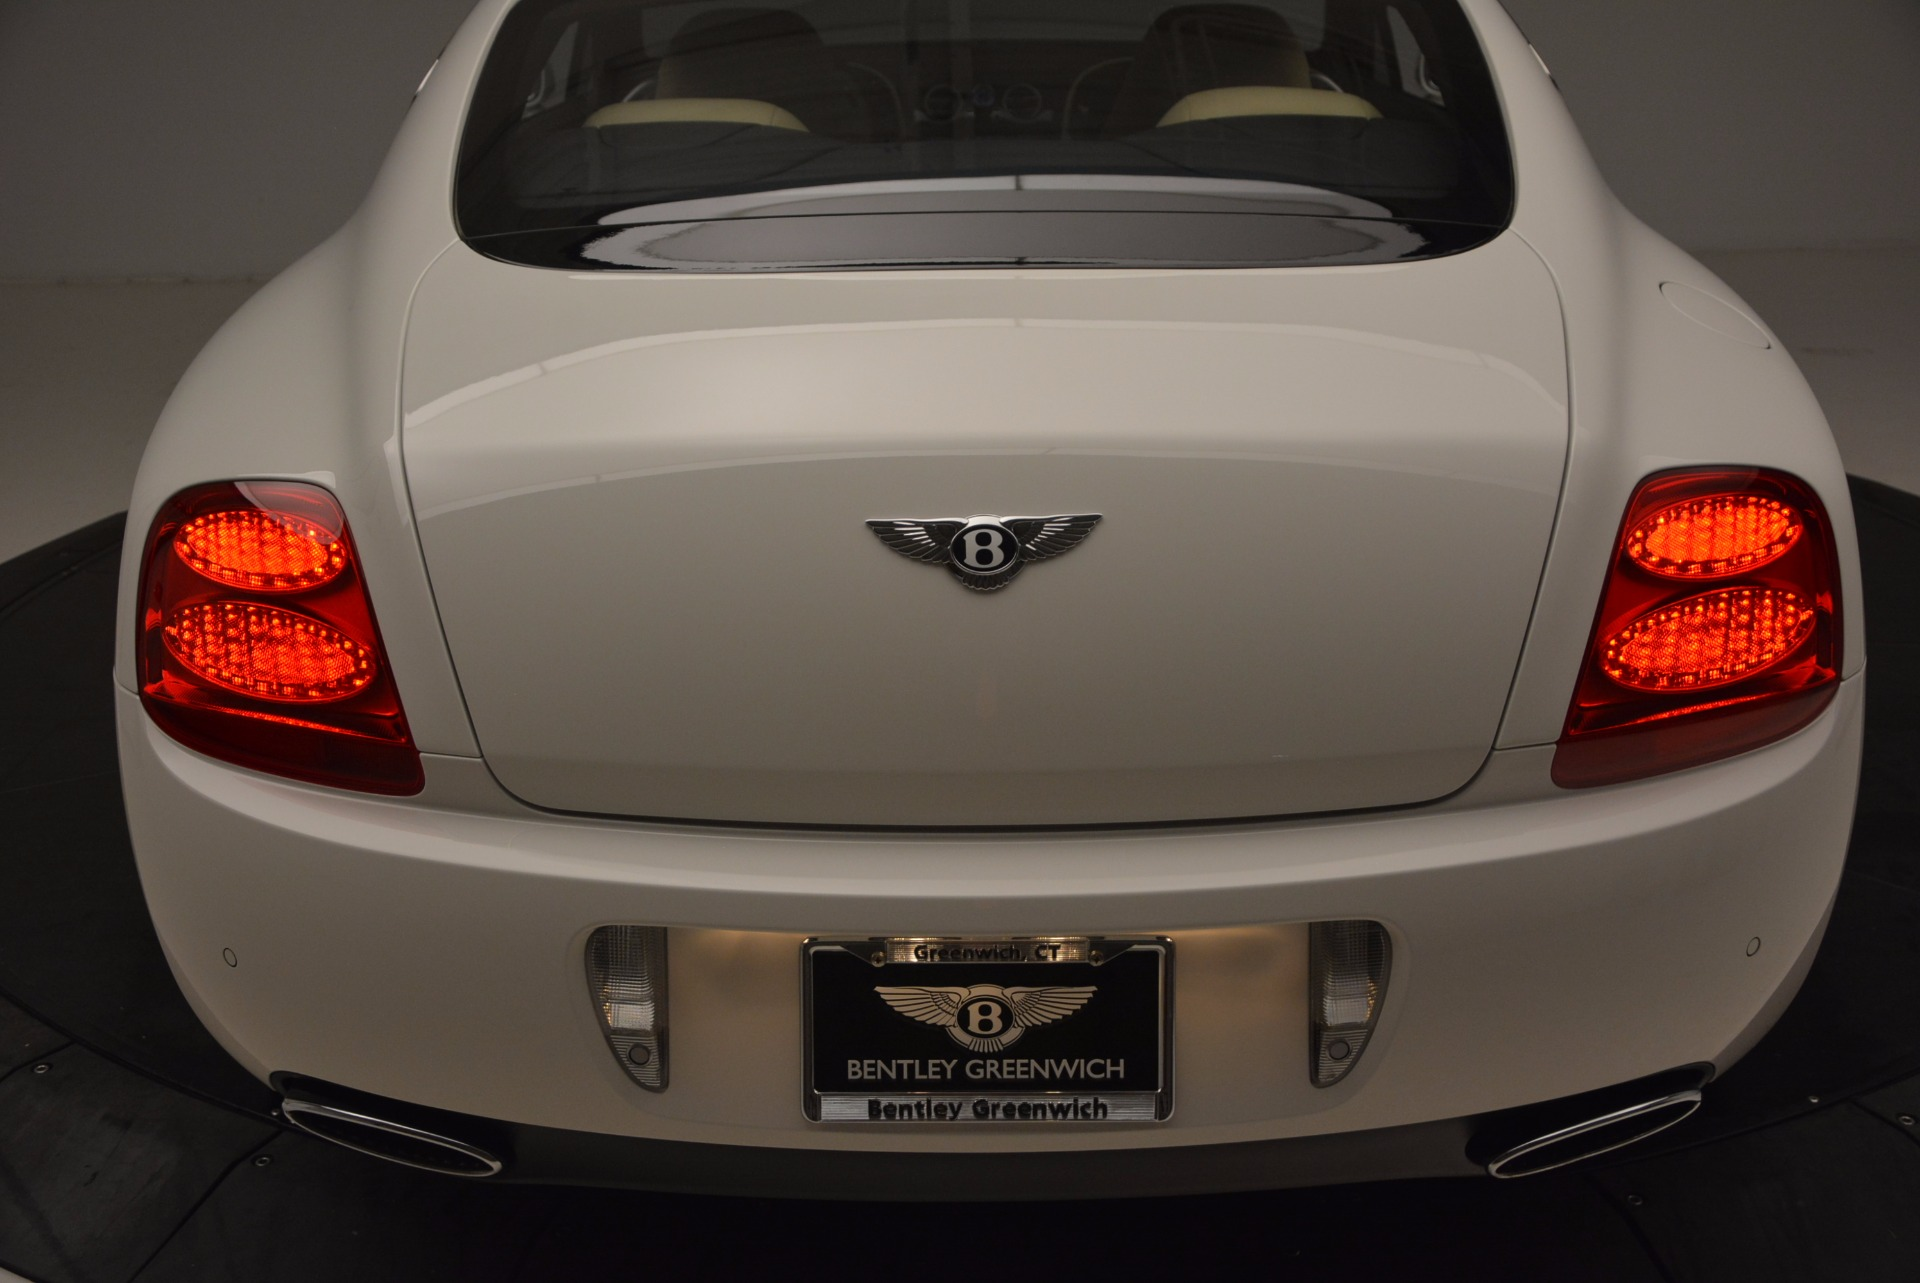 Used 2008 Bentley Continental GT Speed For Sale In Westport, CT 1552_p28